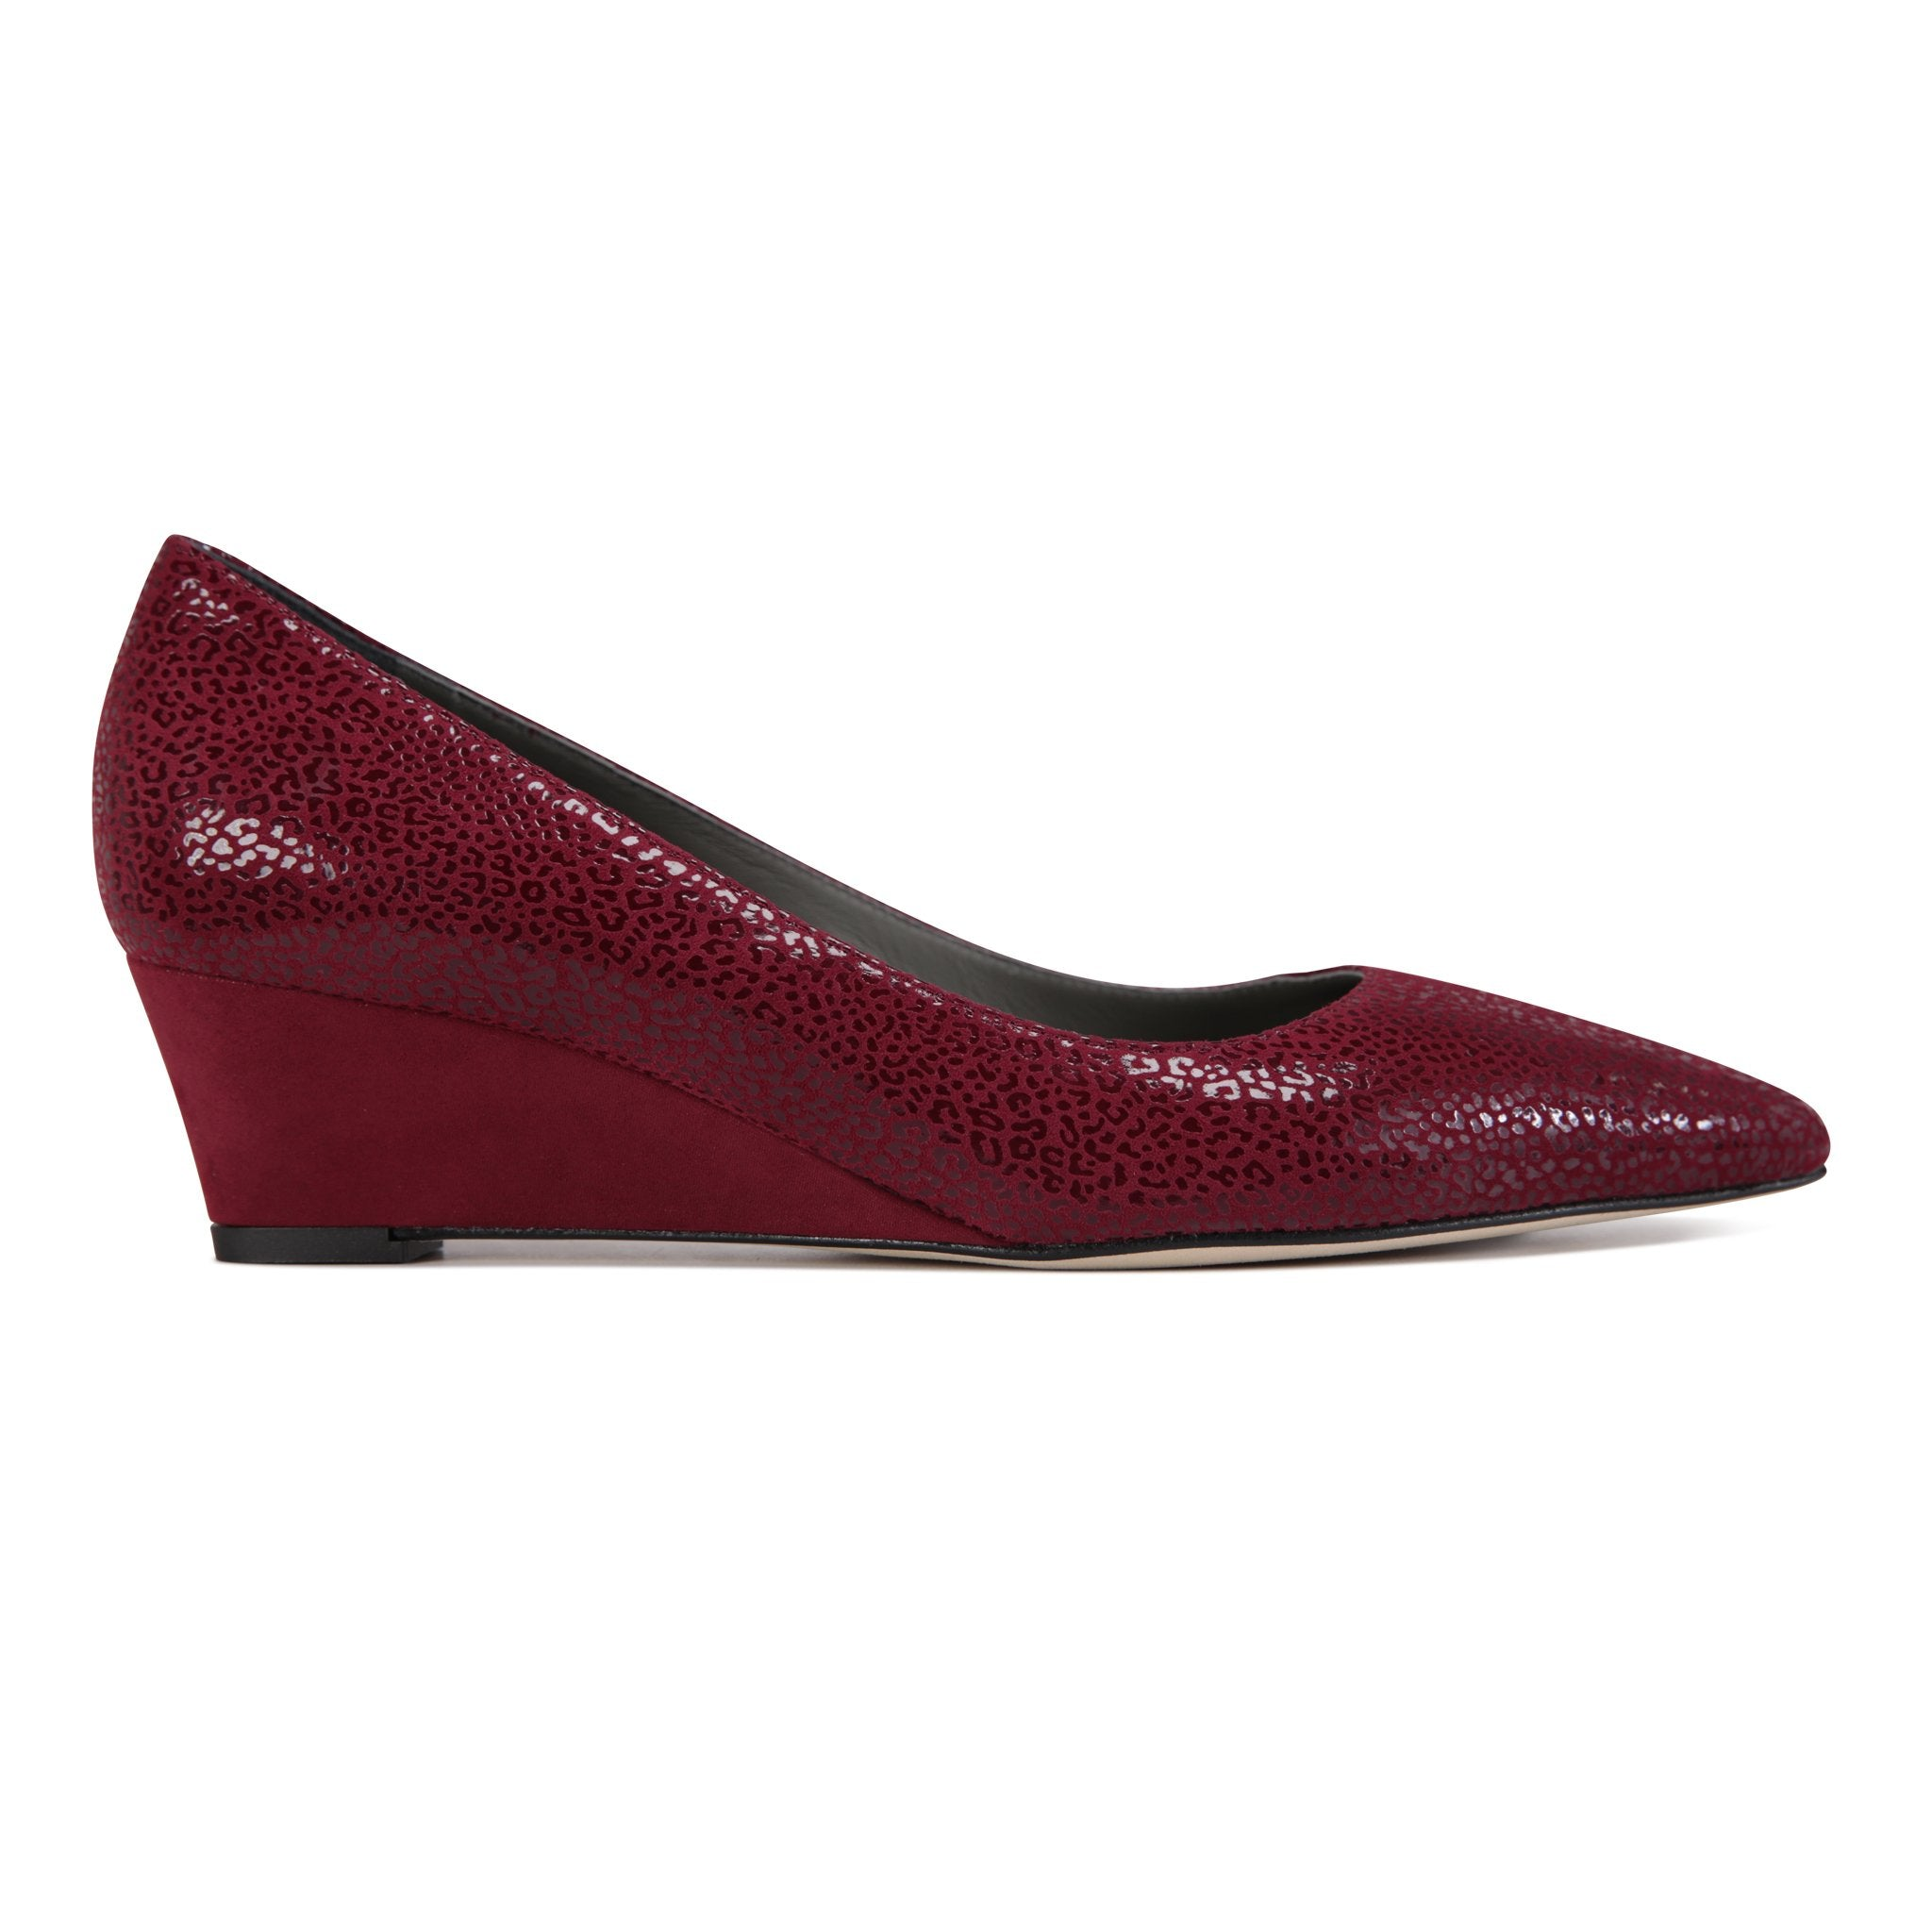 TRENTO - Savannah + Velukid Bordeaux, VIAJIYU - Women's Hand Made Sustainable Luxury Shoes. Made in Italy. Made to Order.